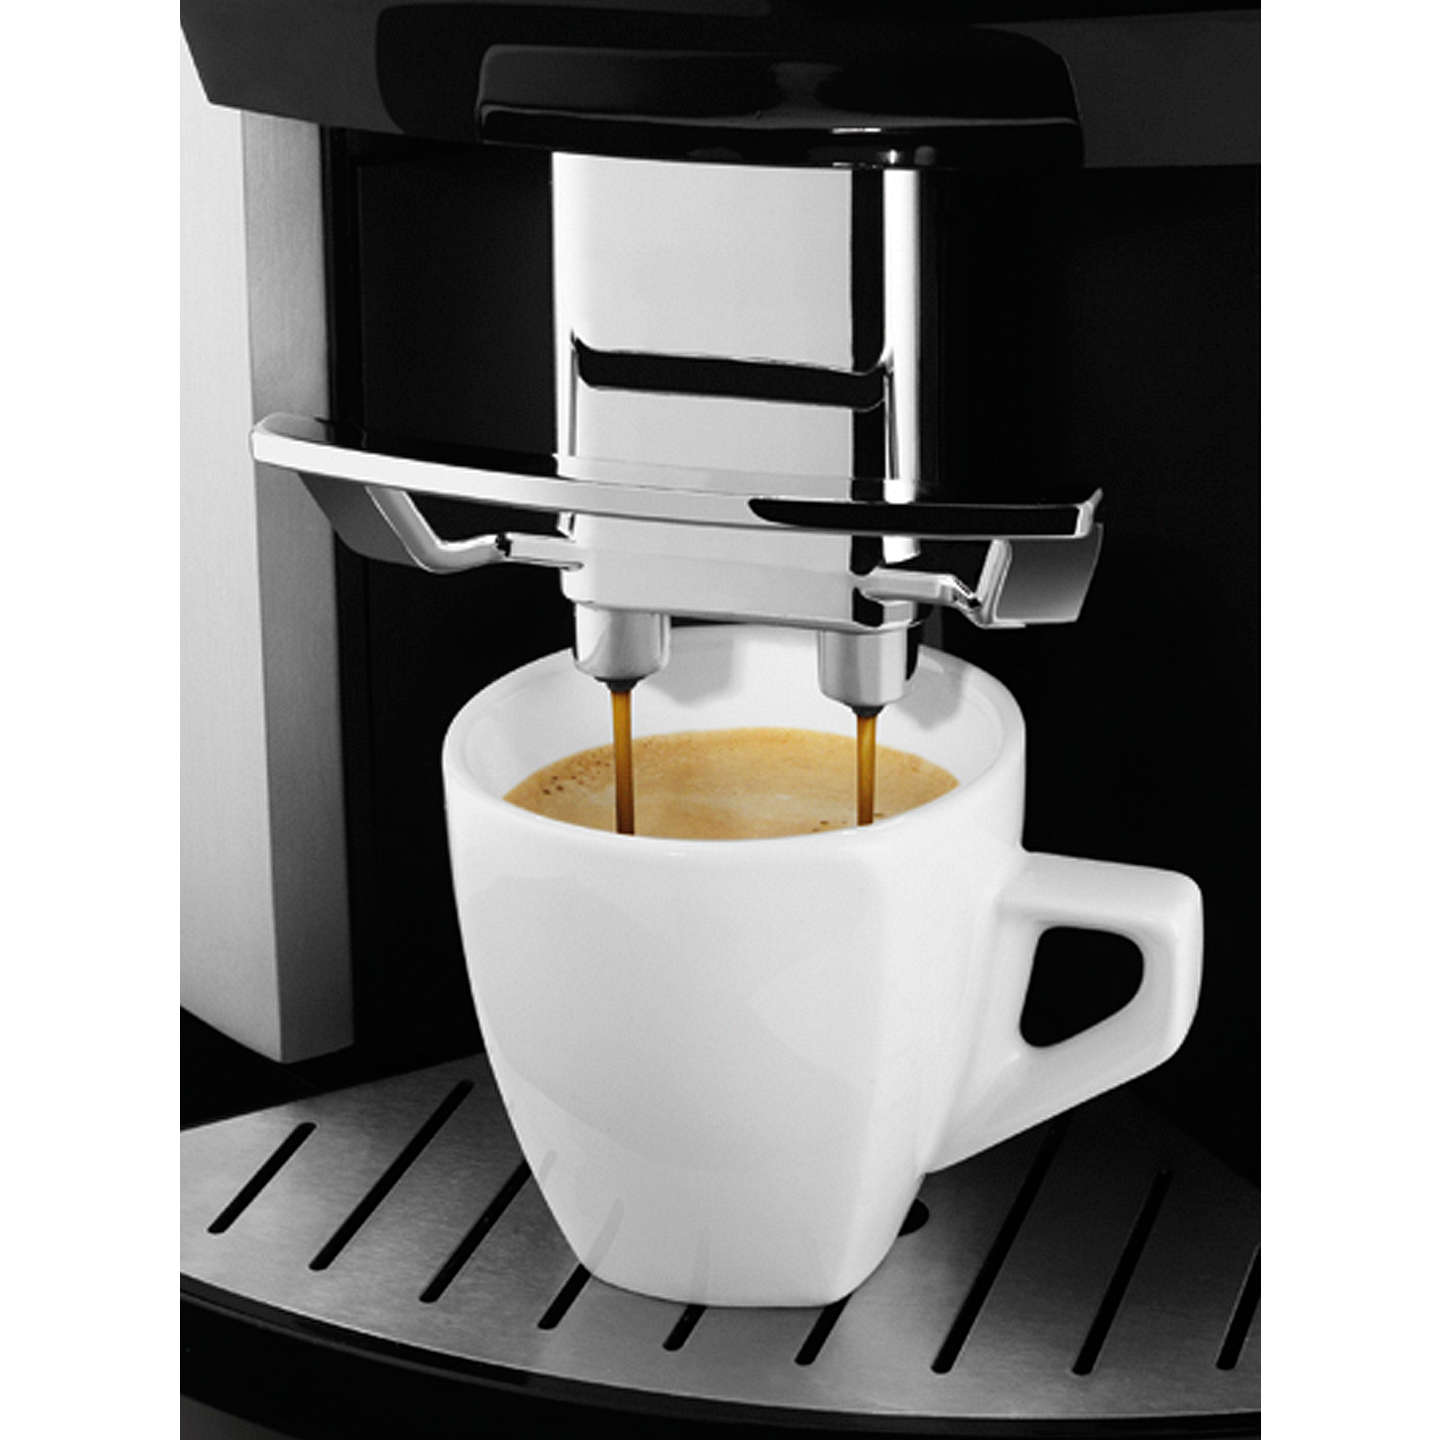 BuyKRUPS EA9010 Espresseria Bean-to-Cup Coffee Machine, Silver Online at johnlewis.com